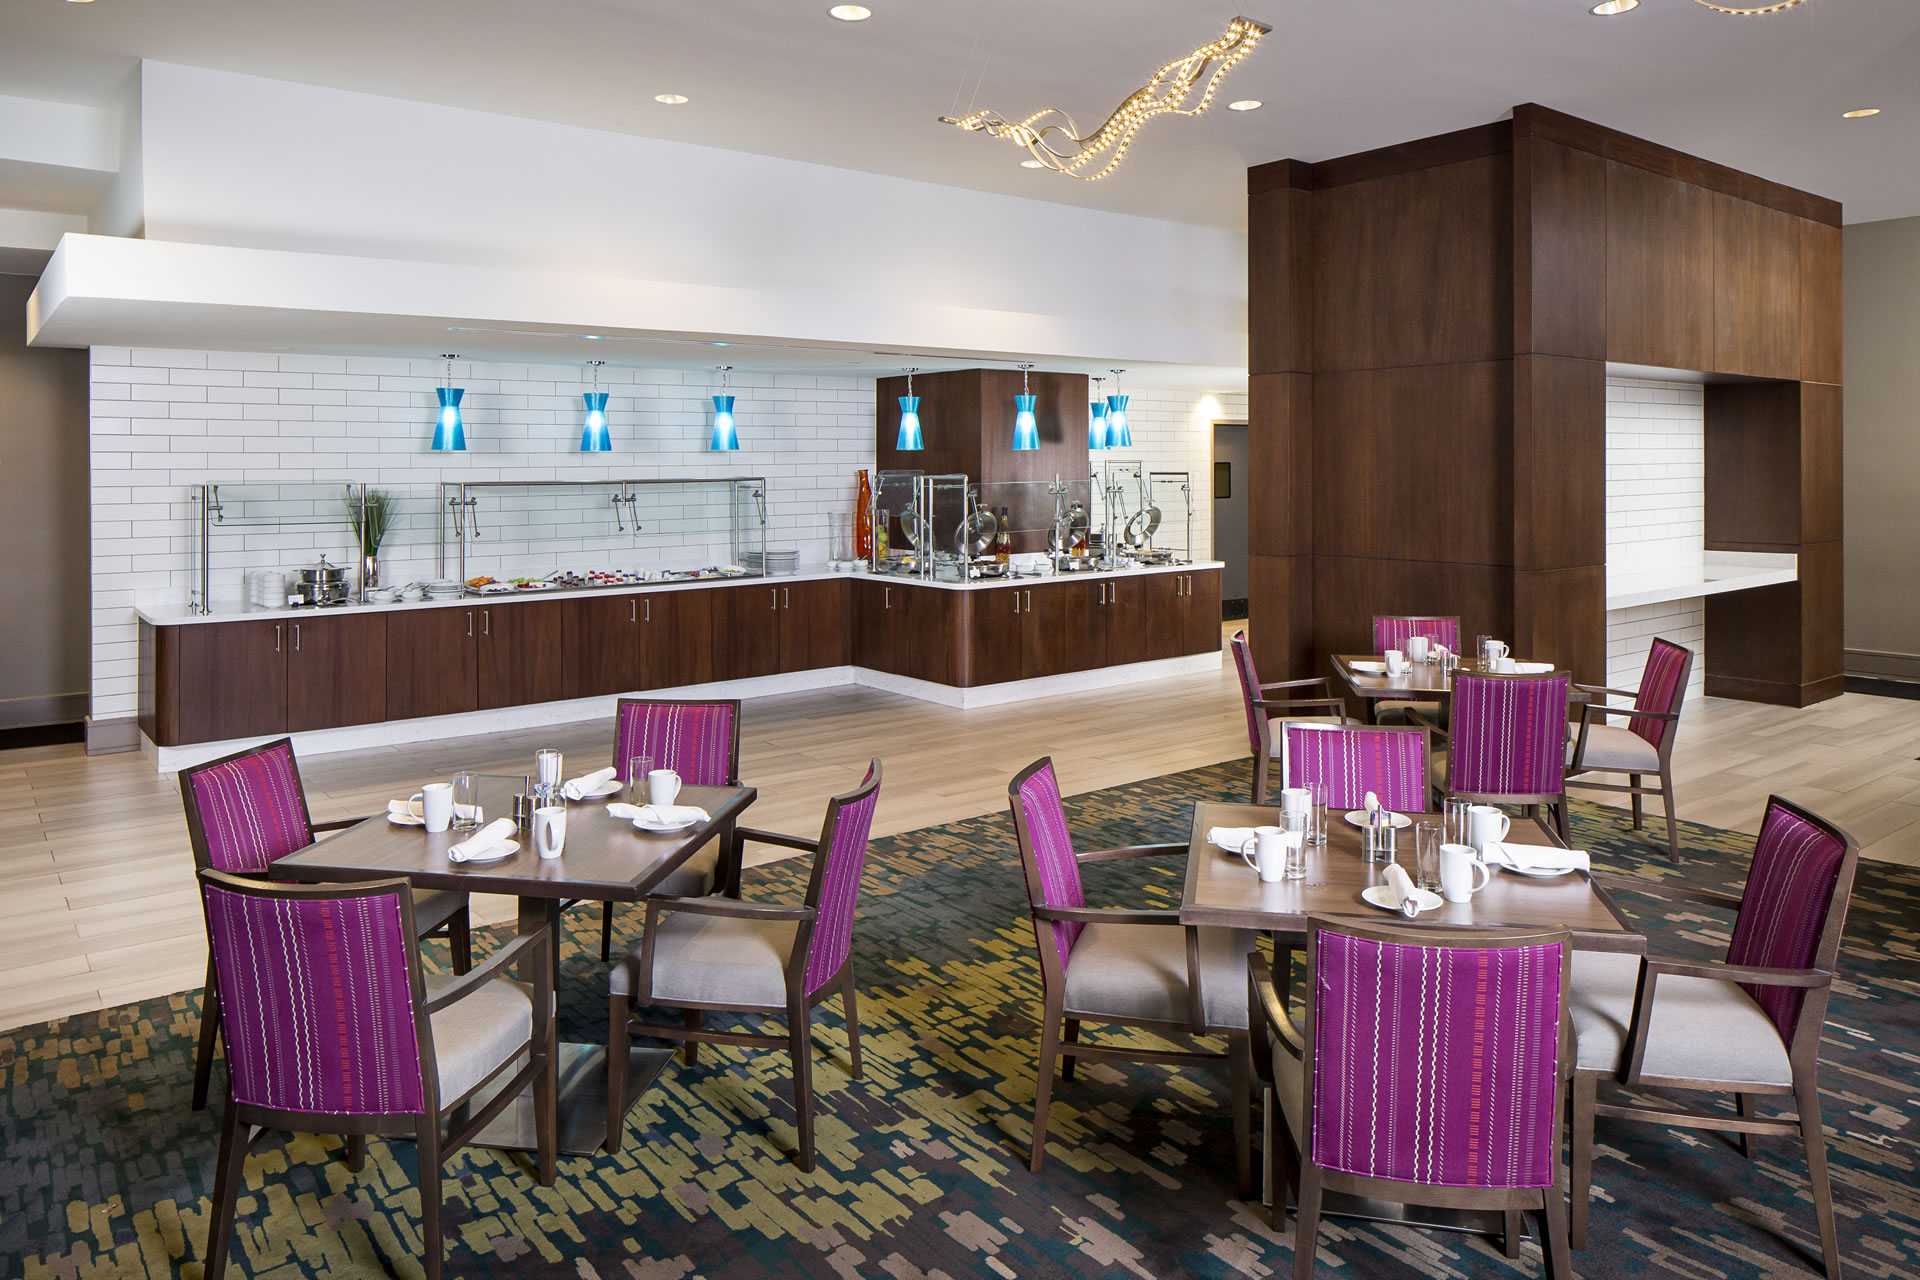 Breakfast buffet and dining tables at First restaurant in Crowne Plaza Atlanta Midtown.